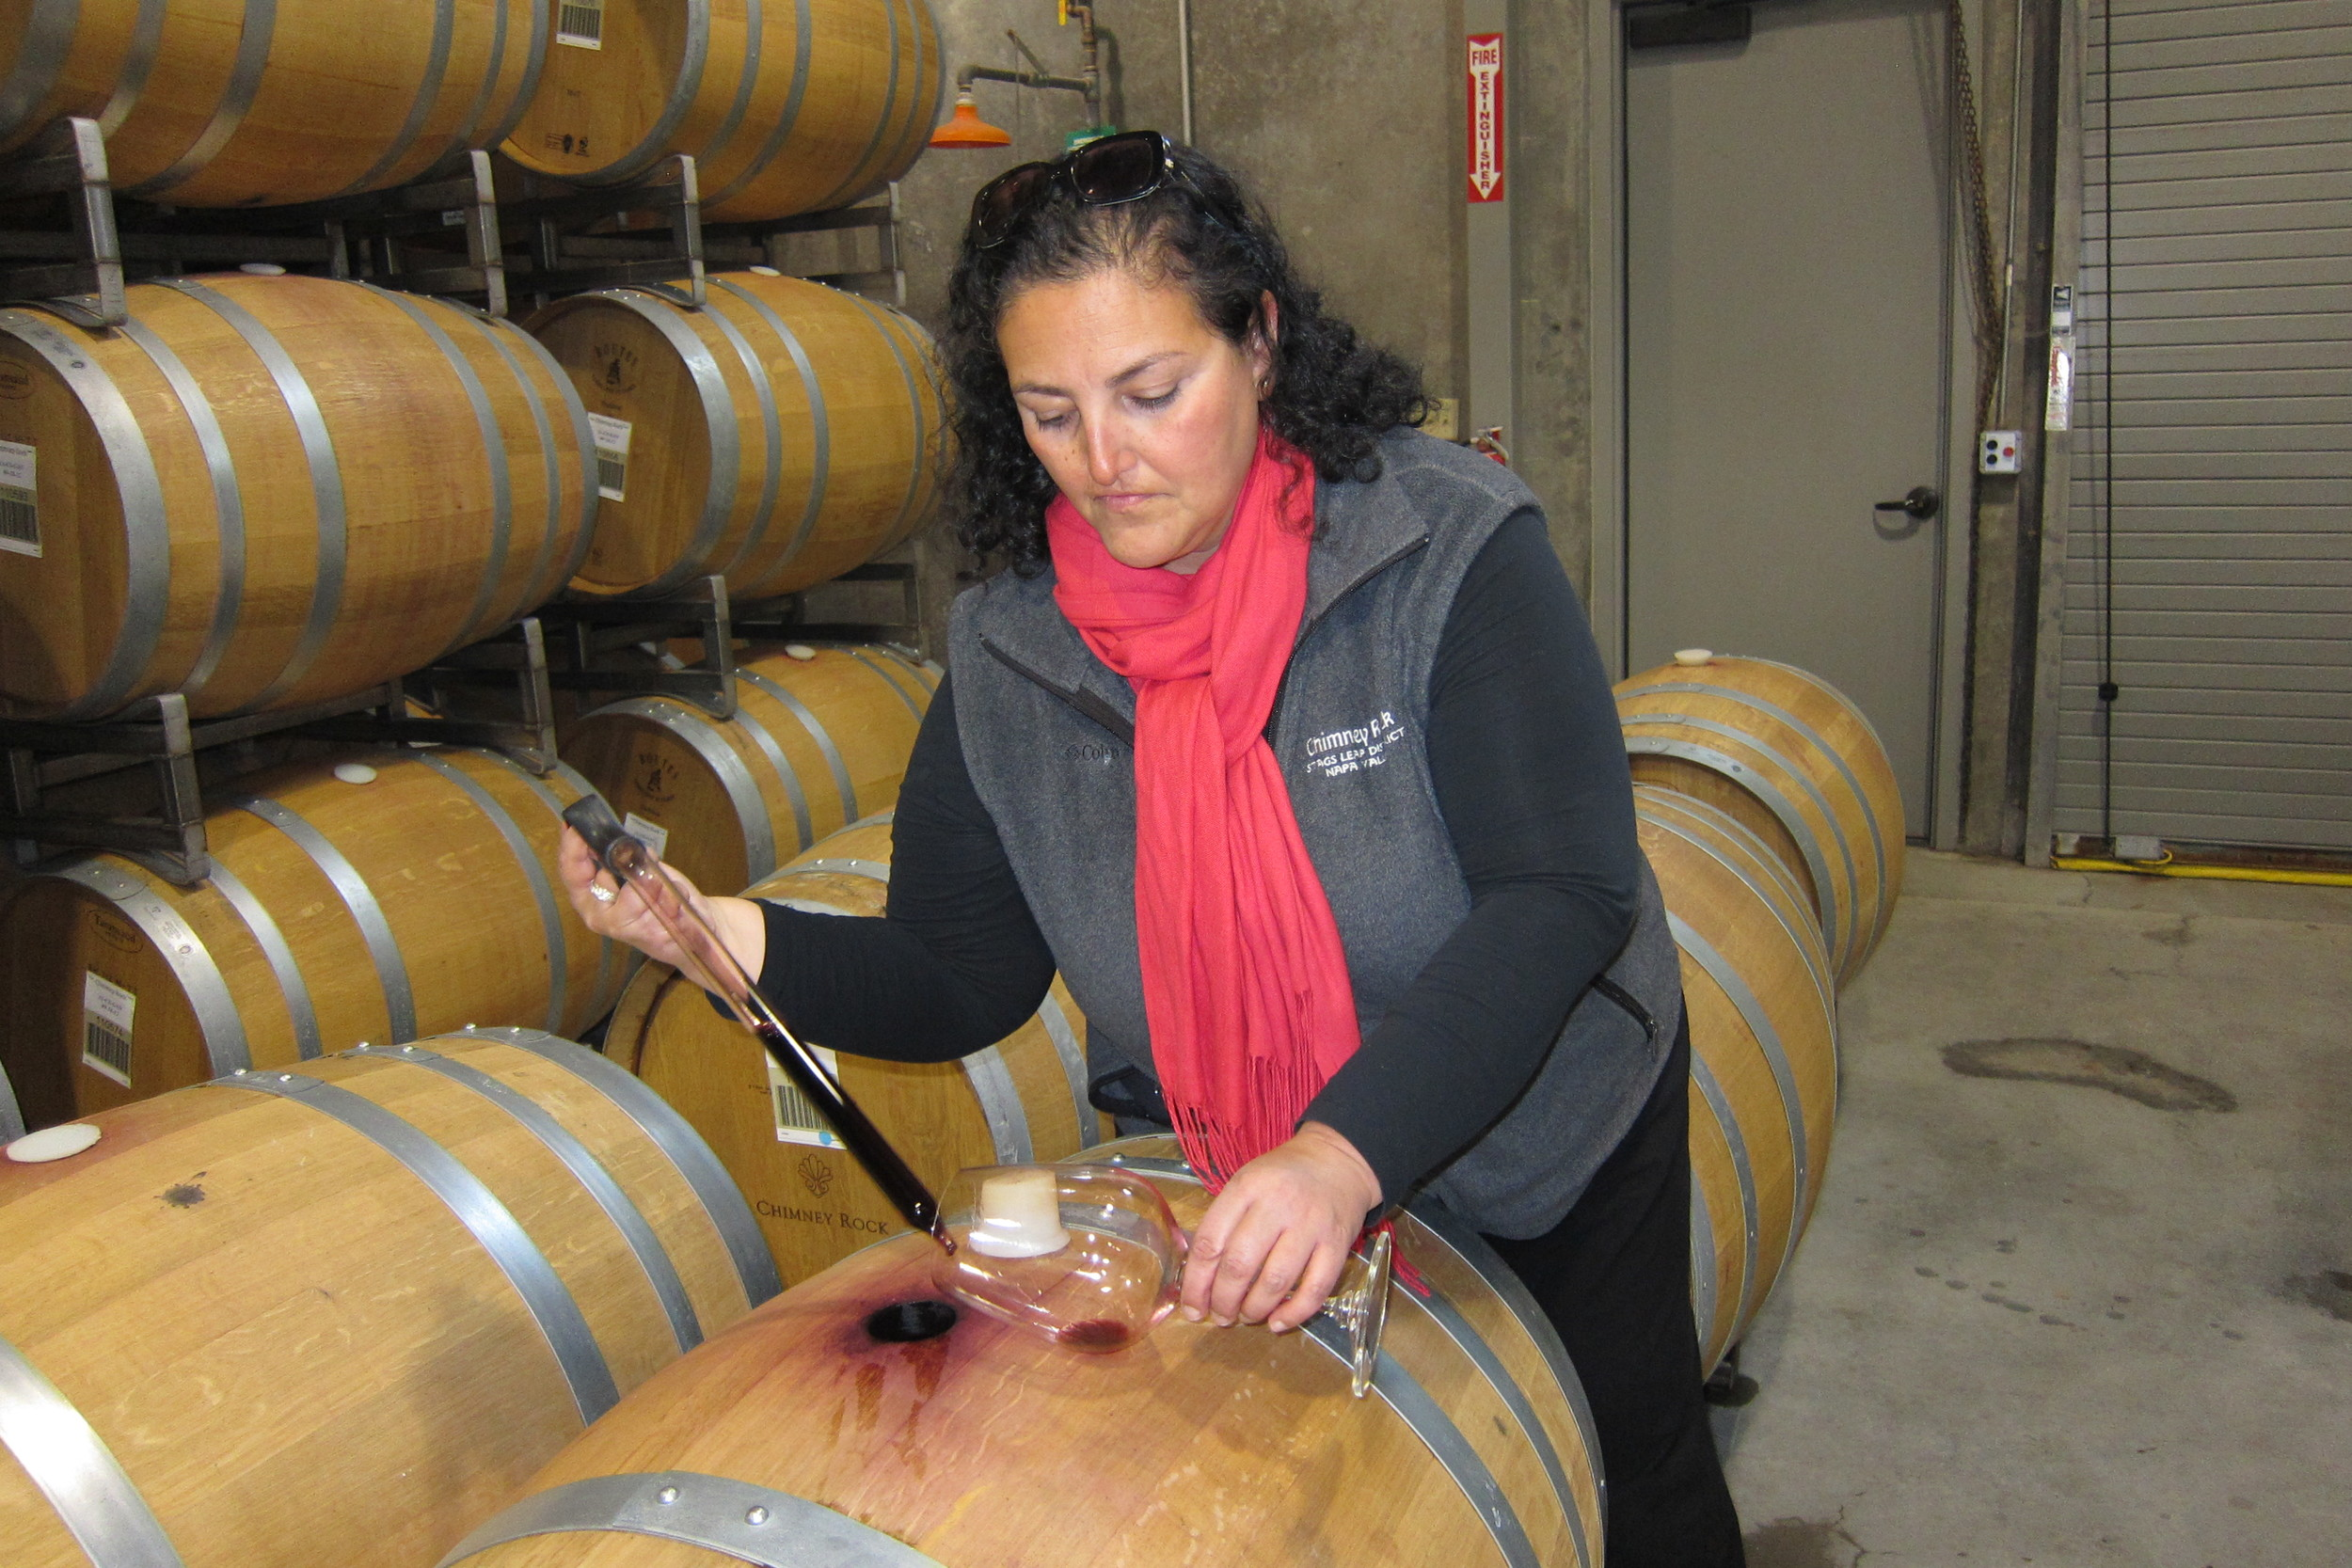 Head winemaker at Chimney Rock, Elizabeth Vianna